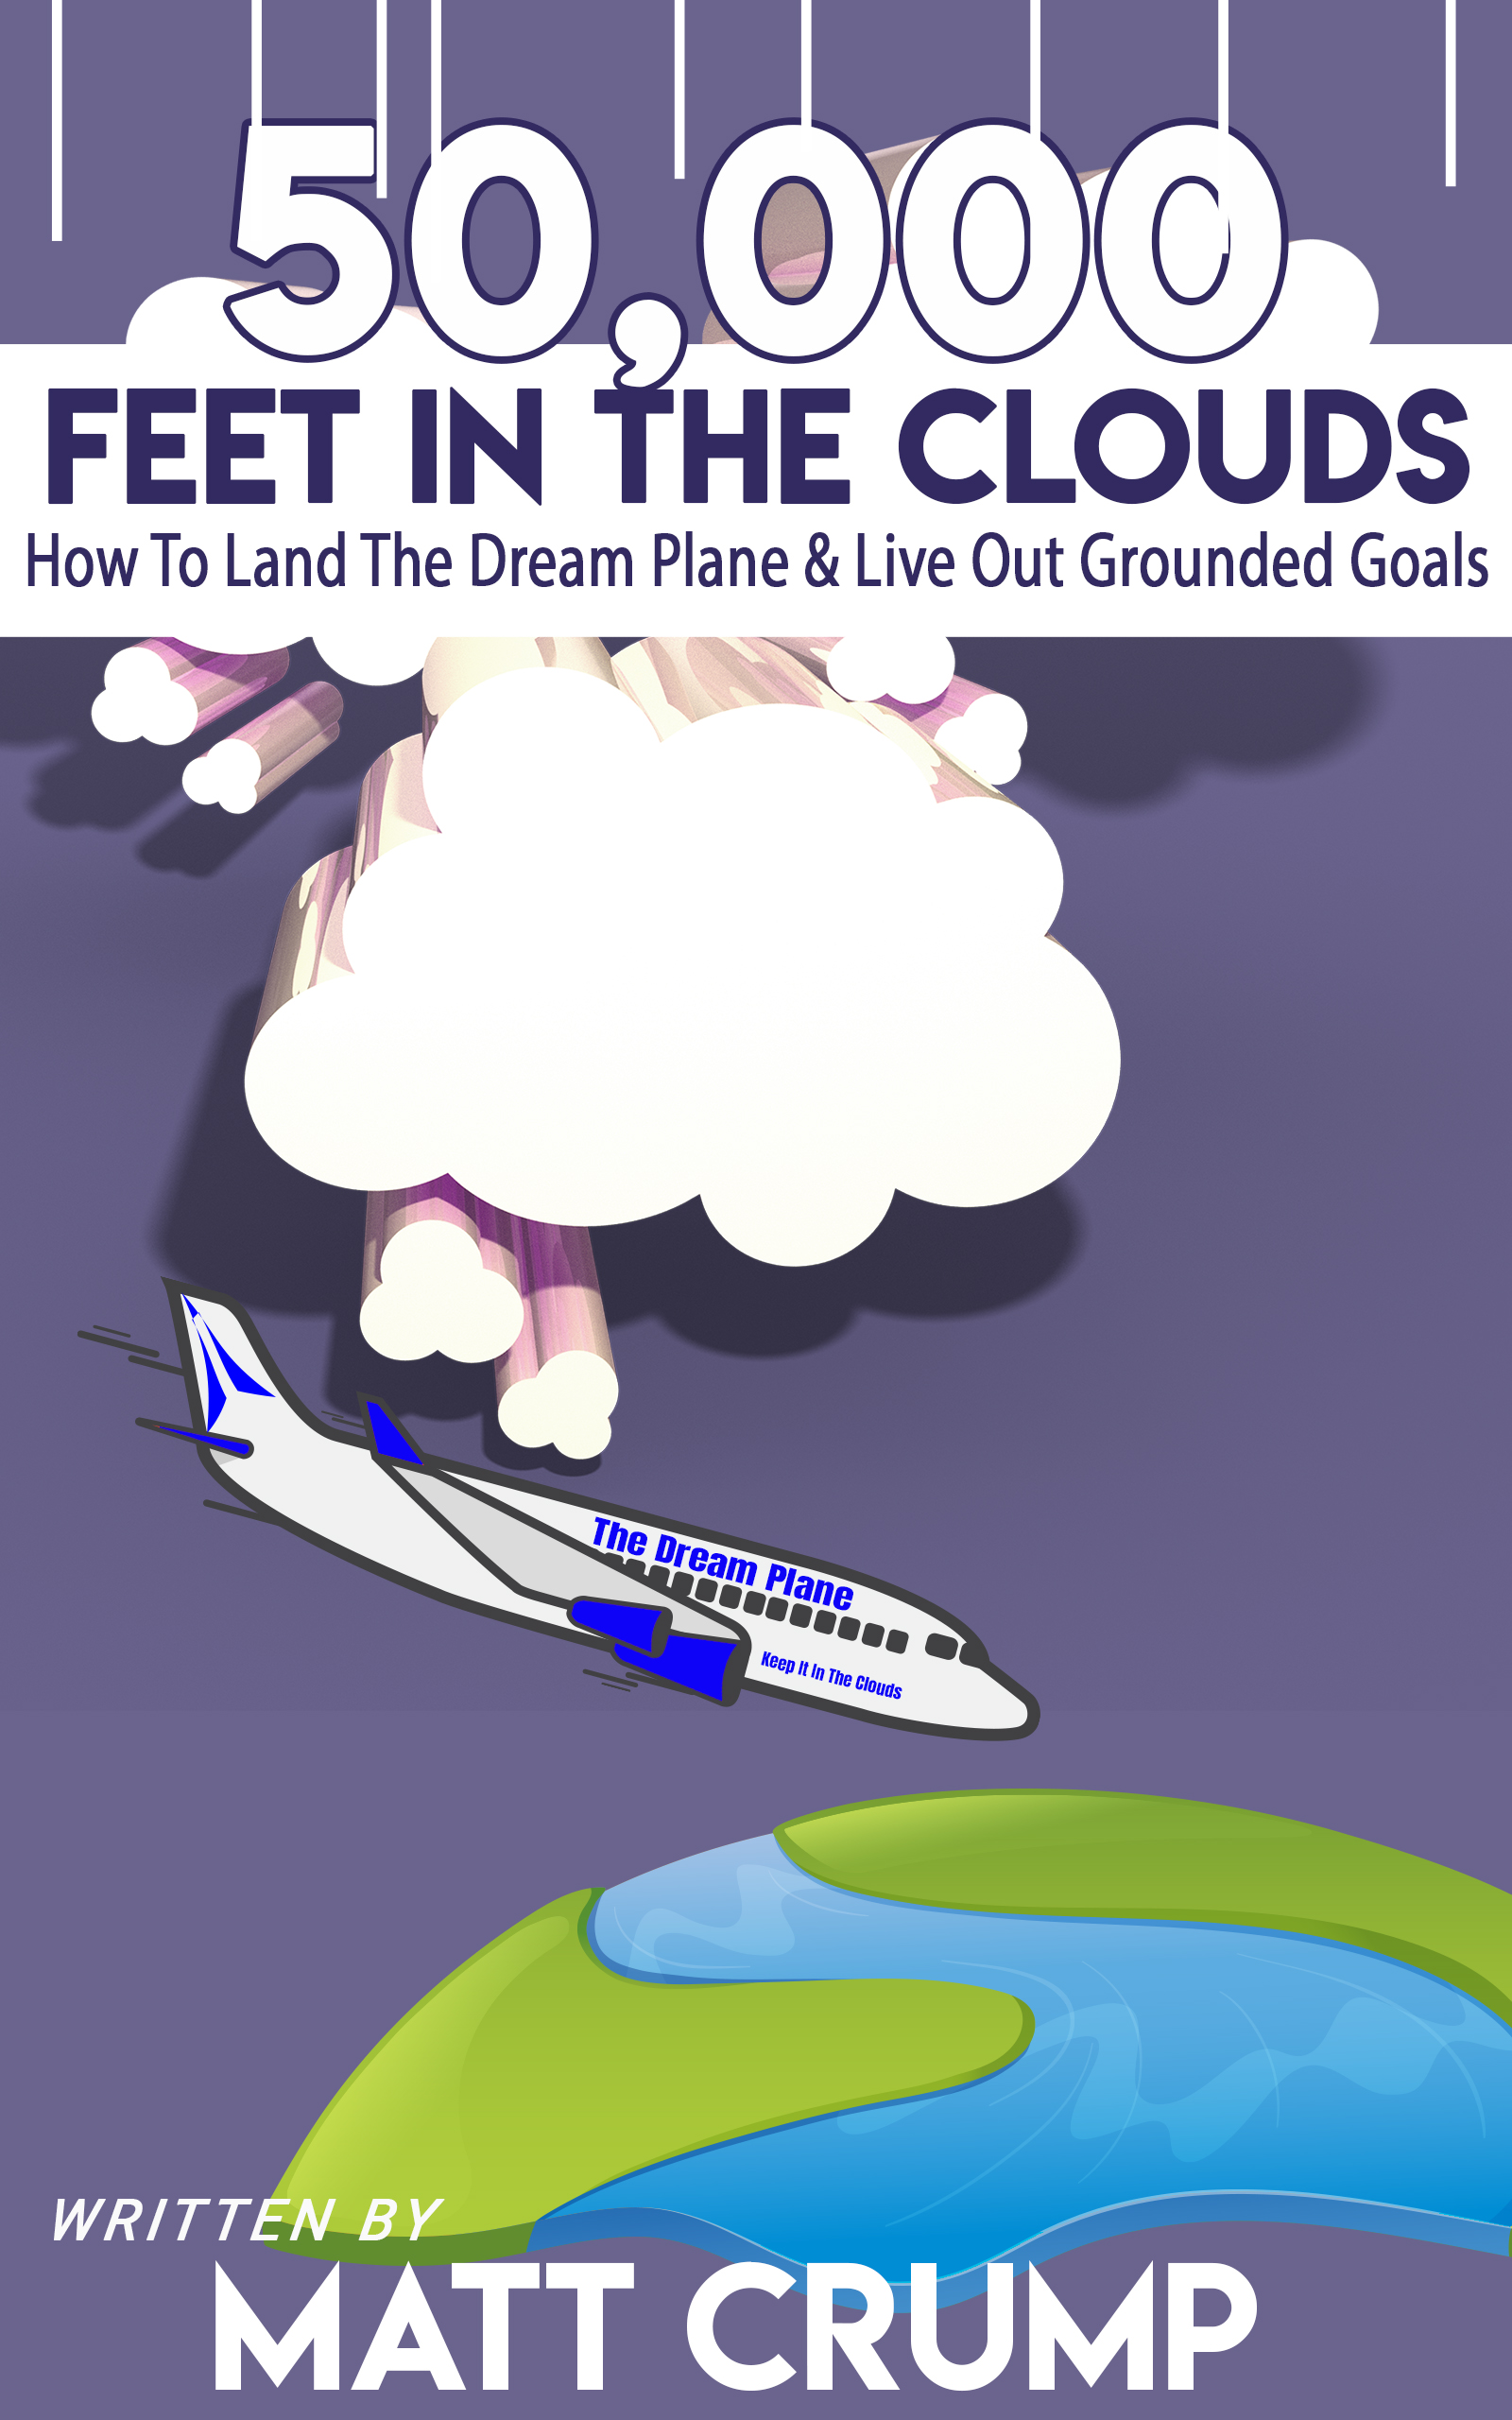 Tired of having your dreams in the clouds? - Get your FREE book written by Matt Crump to help you discover ways to Land The Dream Plane & Live Out Grounded Goals